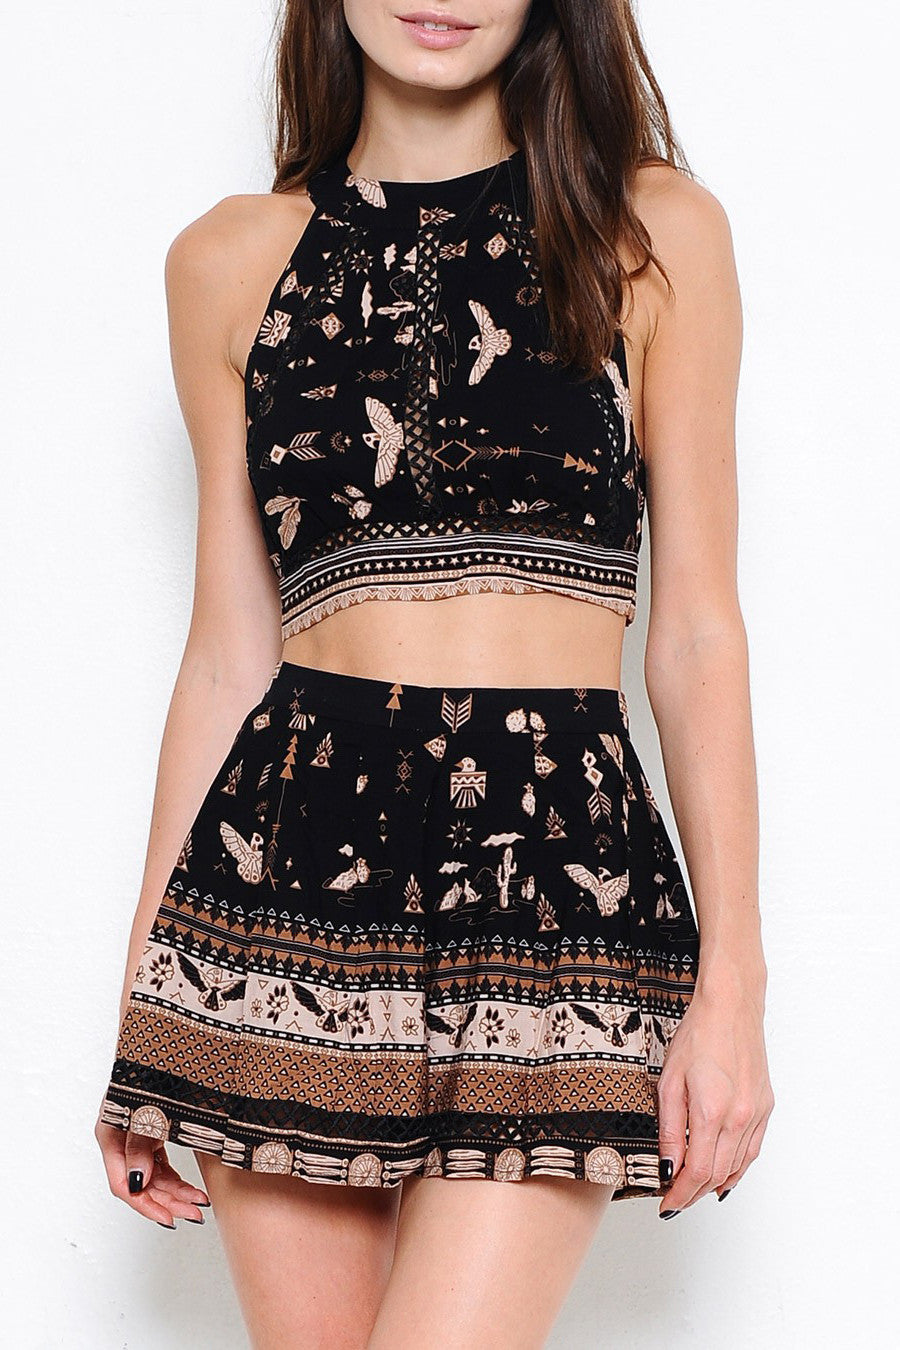 Women's casual crop top outfits: black border print tribal two piece matching set with shorts. Front view.